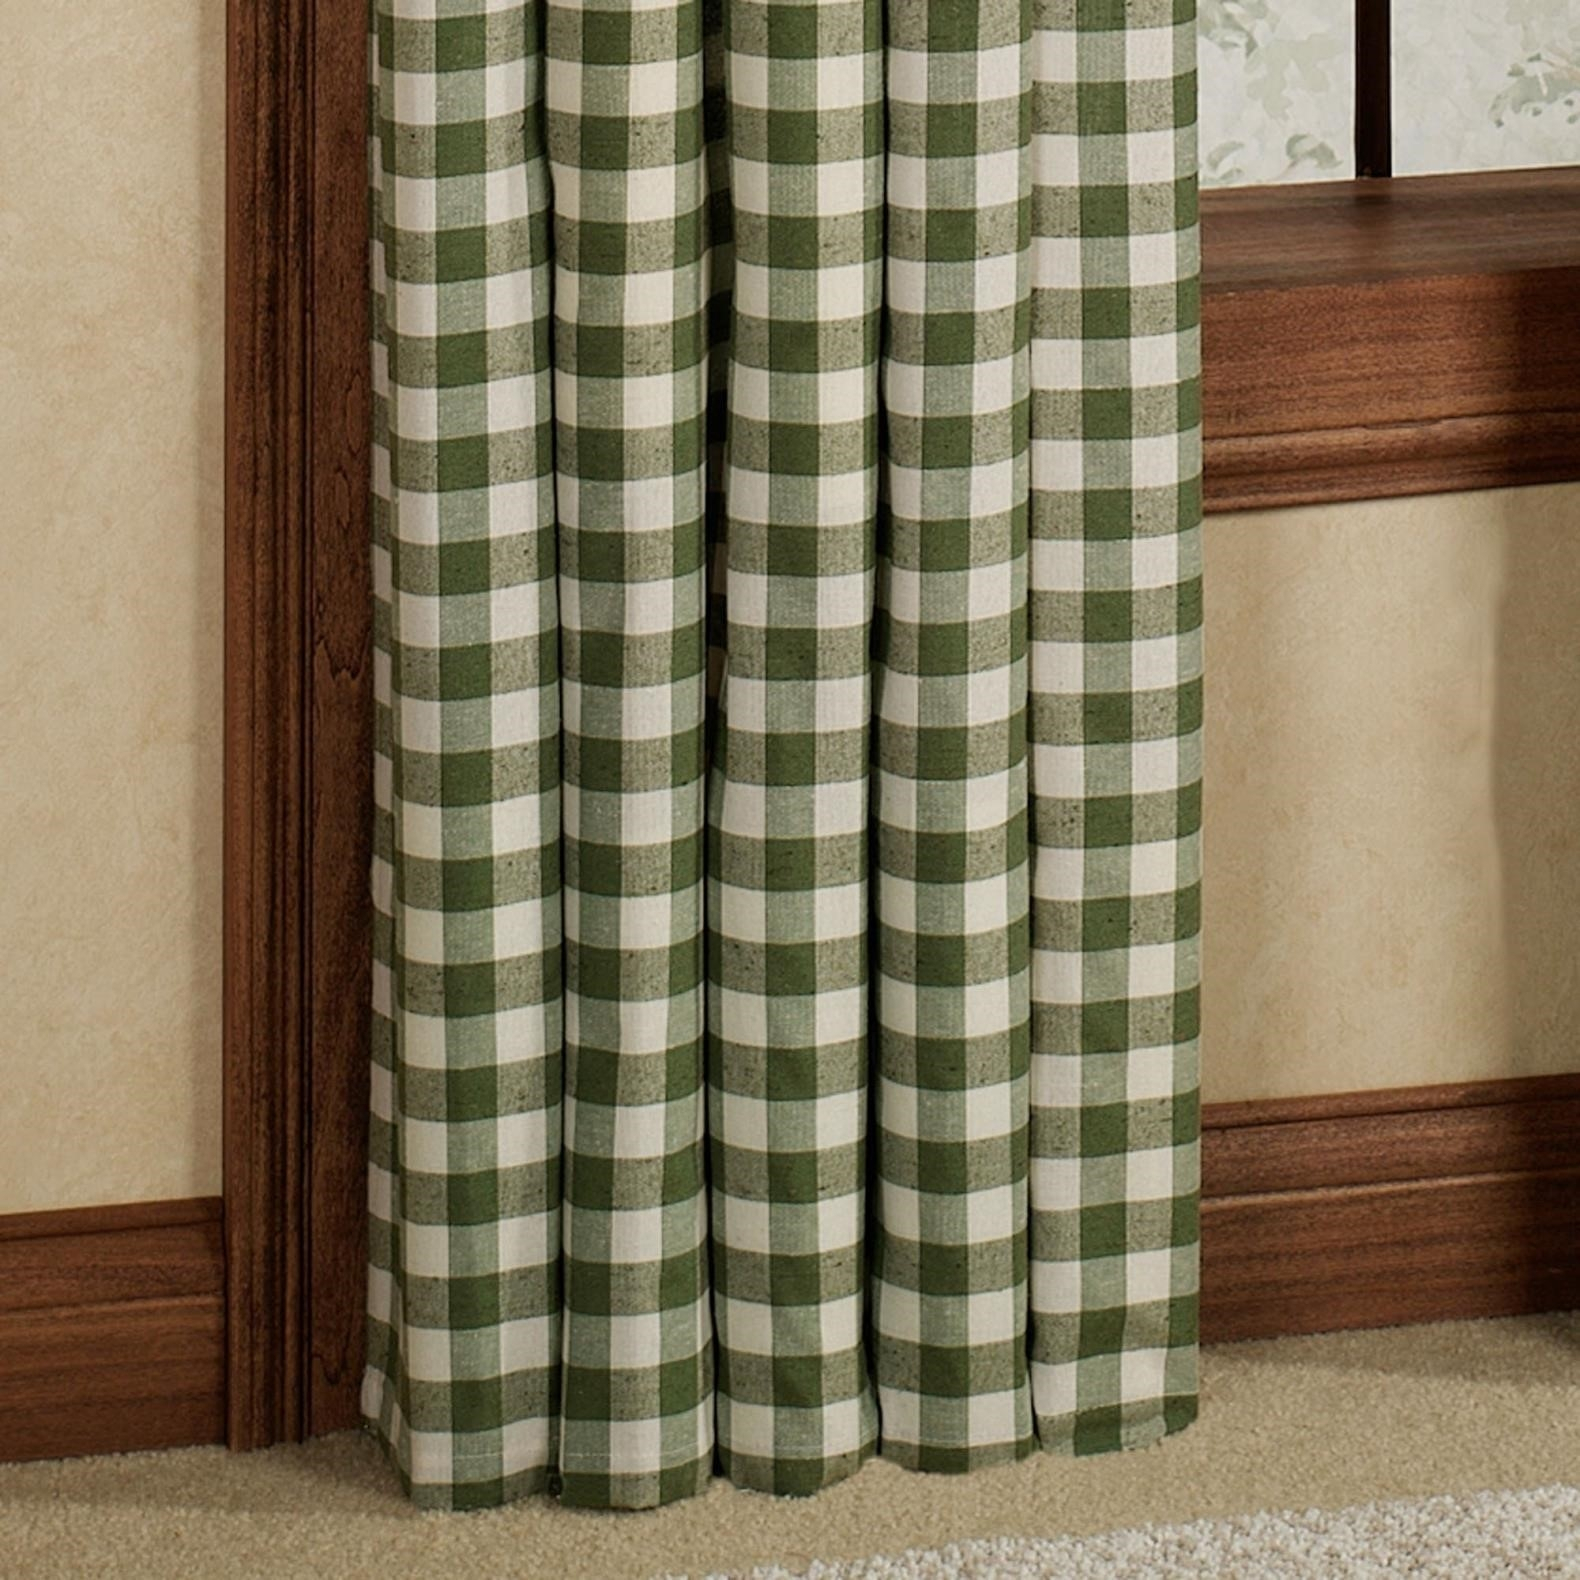 Green Plaid Country Shower Curtain Shower Curtain Within Size 1580 X 1580